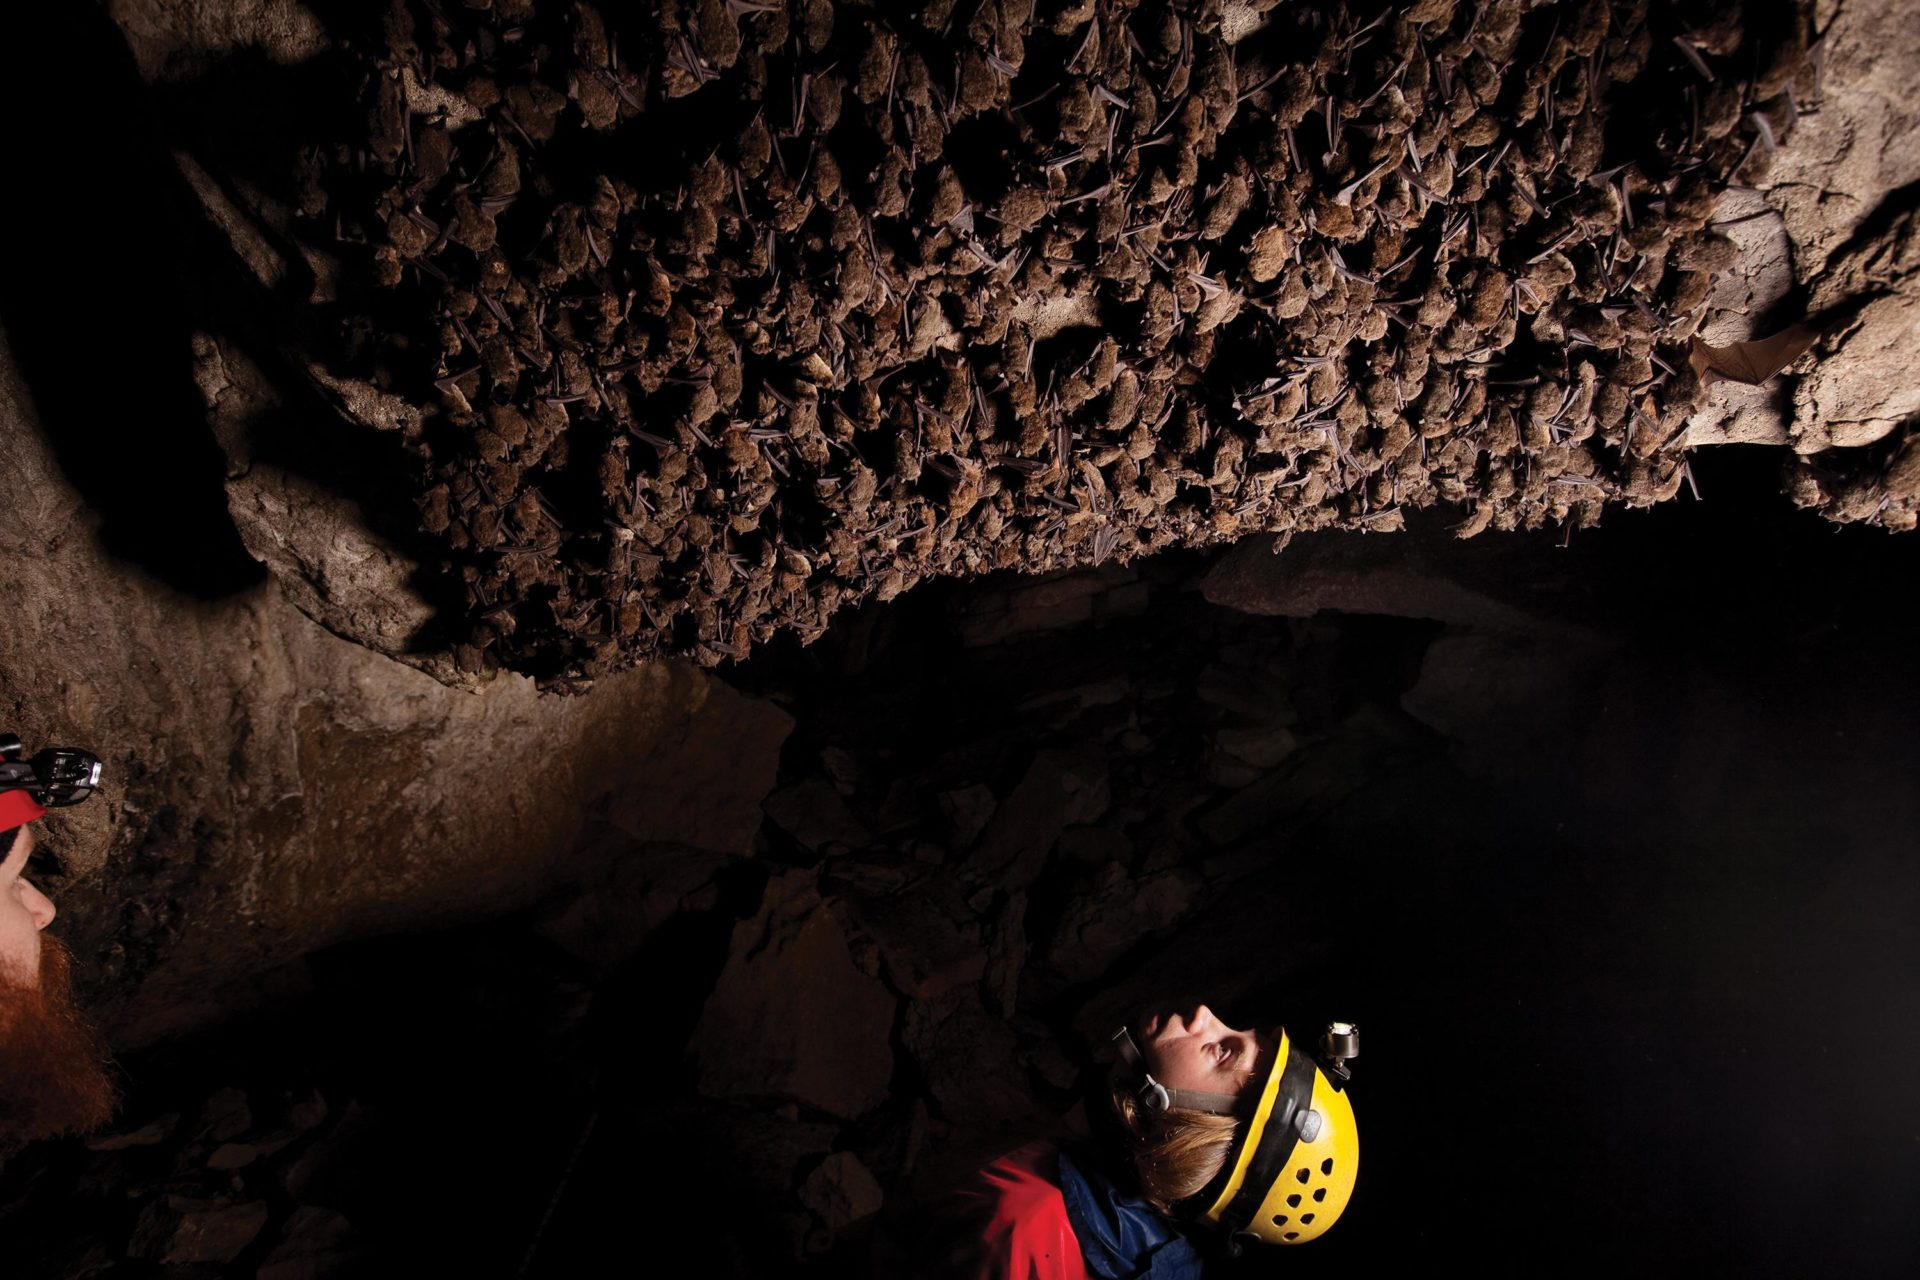 Bats in a Tennessee cave are inspected for white-nose syndrome. Photo by Stephen Alvarez/National Geographic Creative